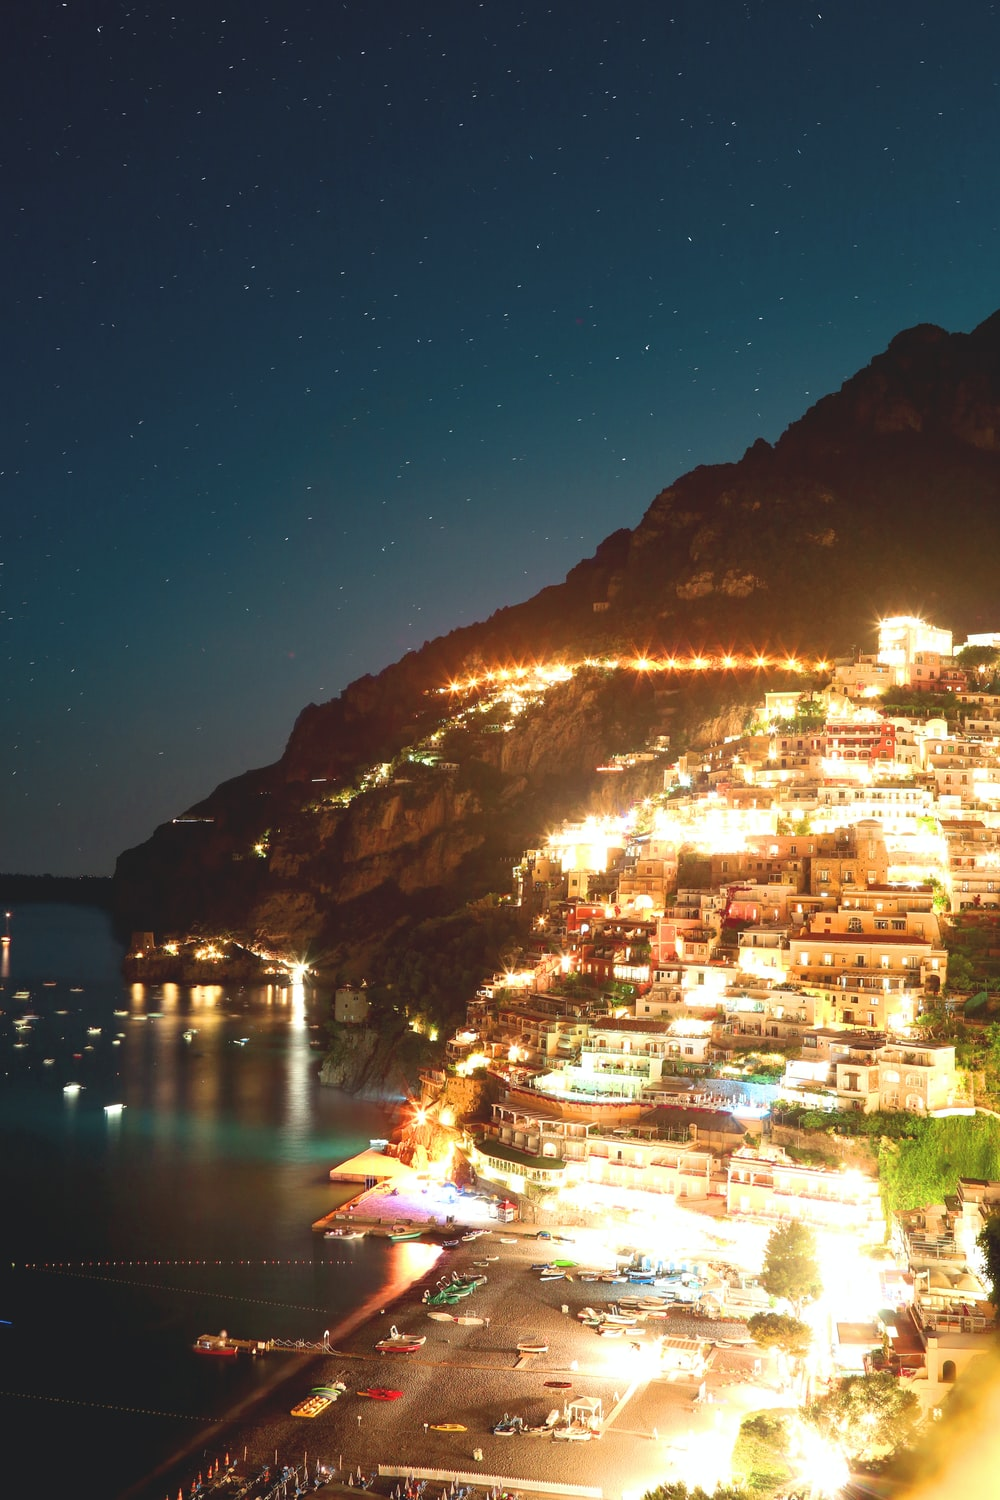 aerial photography of building on mountain beside seashore during nighttime